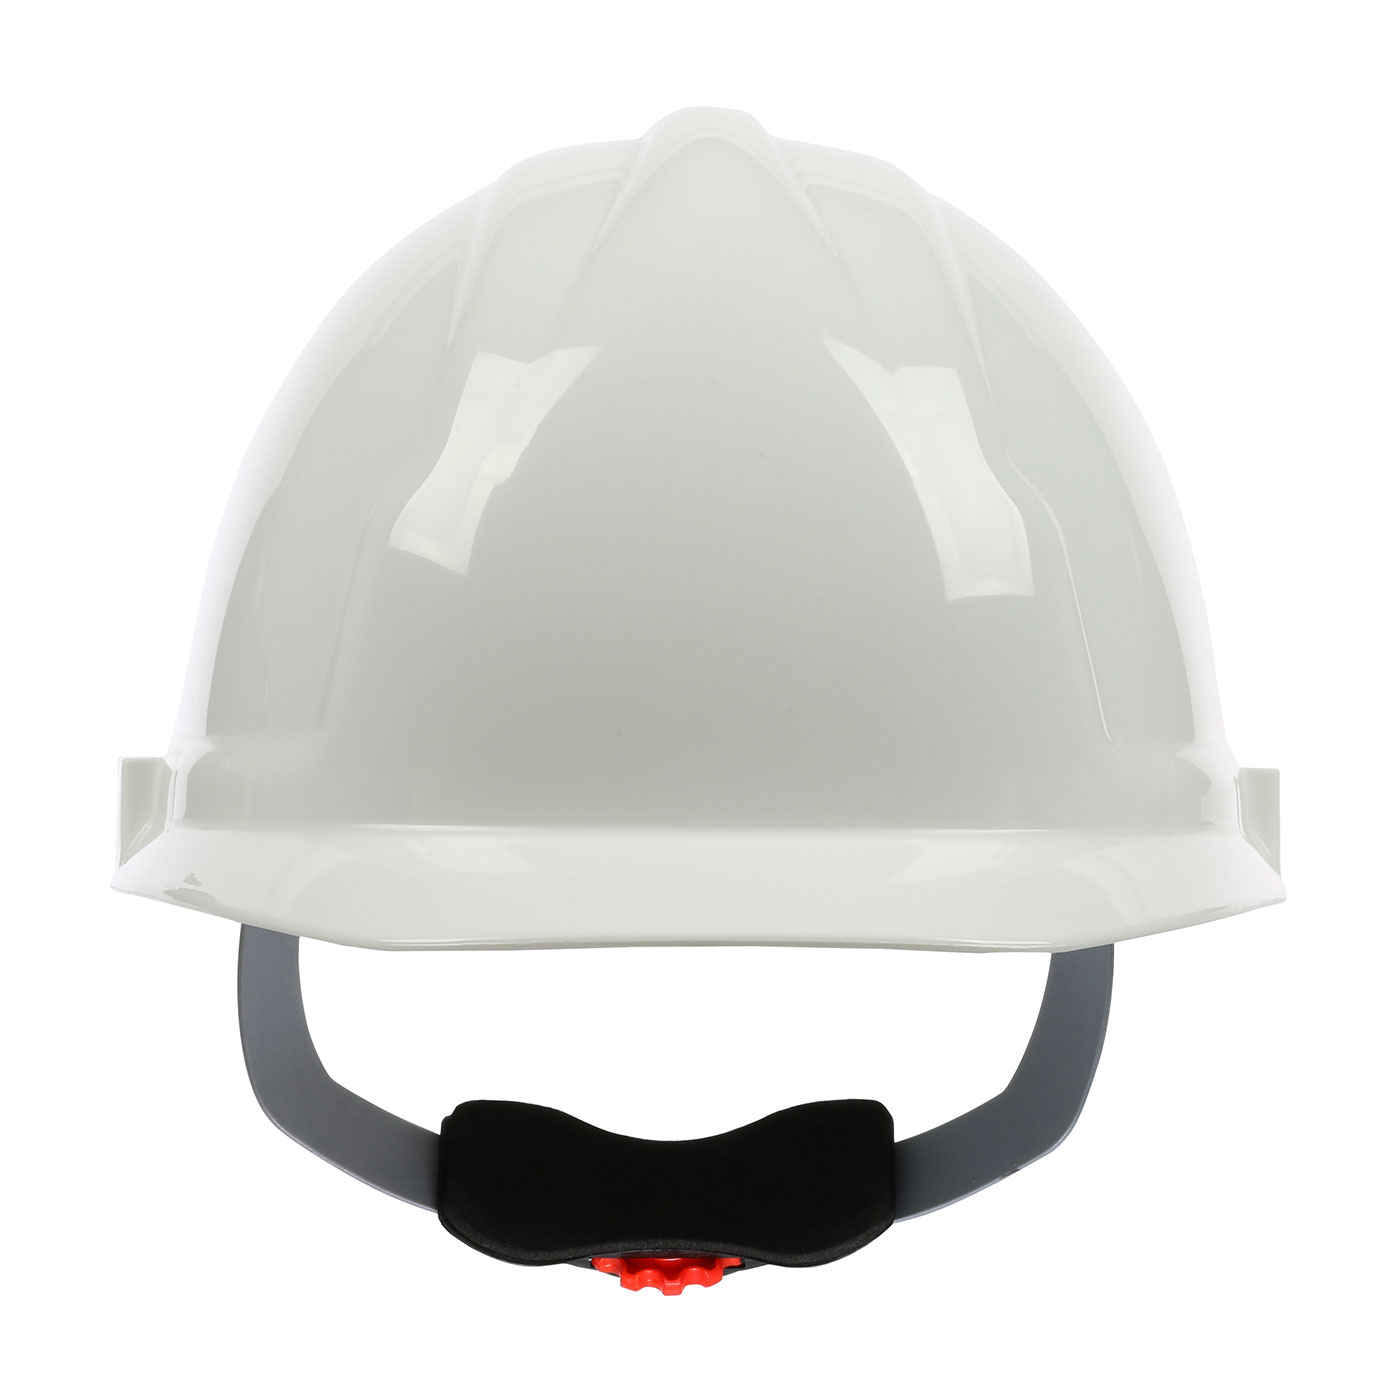 280-CW4200 PIP® 4200 Series Cap Style Hard Hat with HDPE Shell, 4-Point Polyester Suspension and Wheel Ratchet Adjustment - White